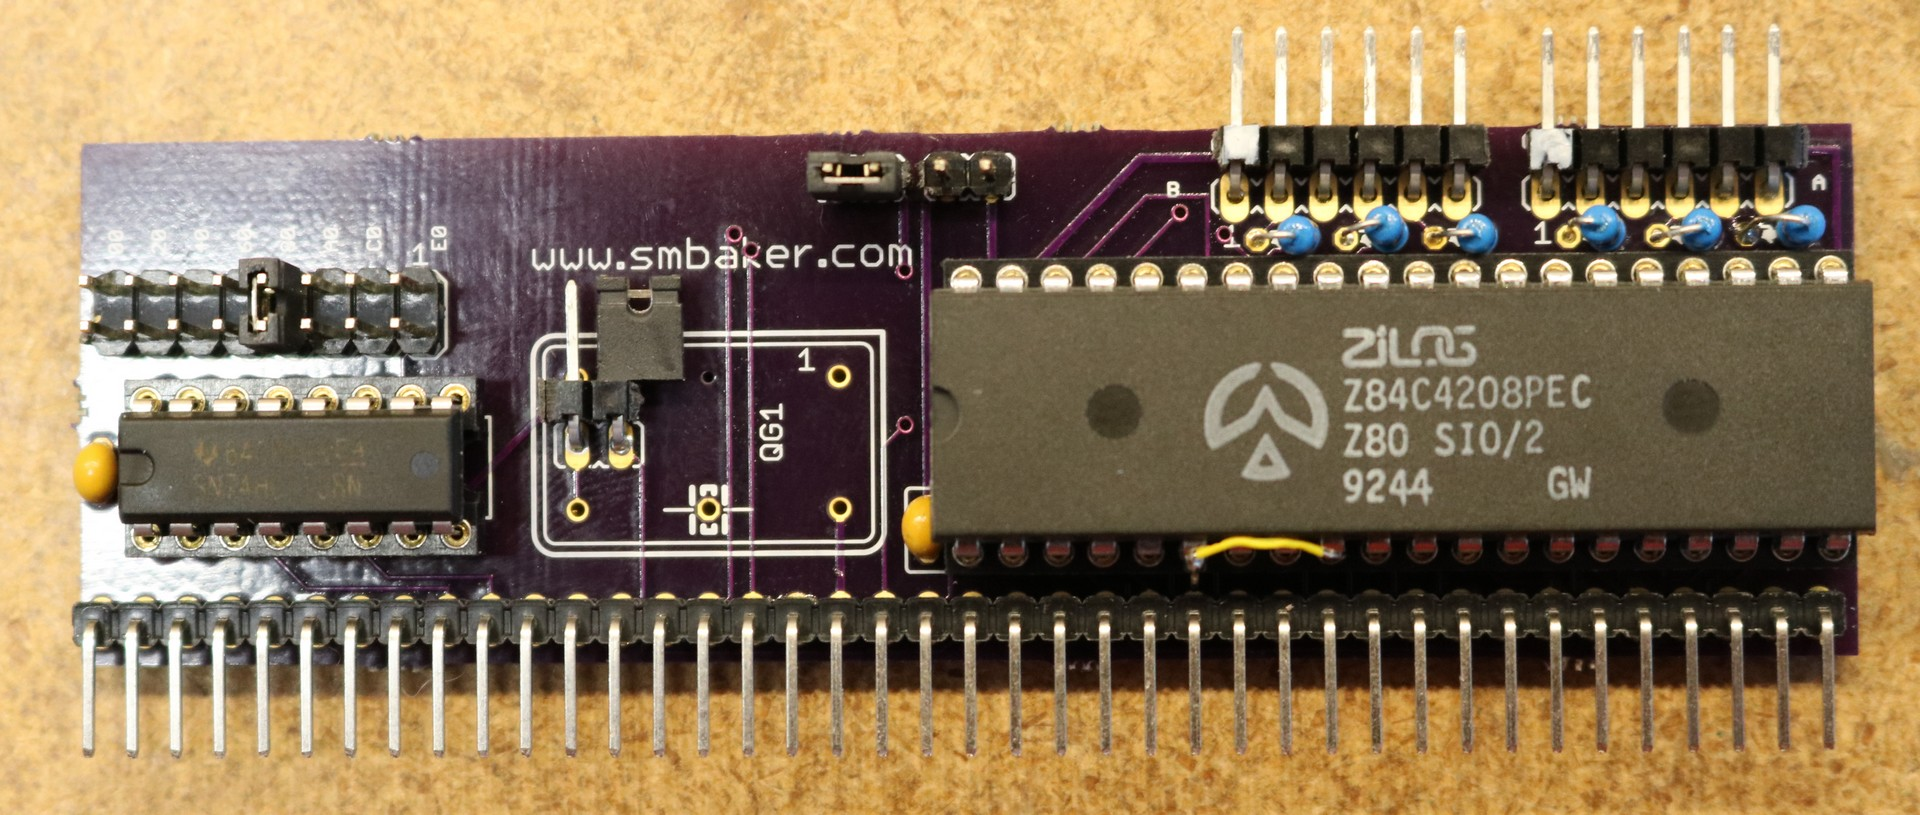 Z80 Retrocomputing 9 – CTC and dual serial ports for RC2014 11